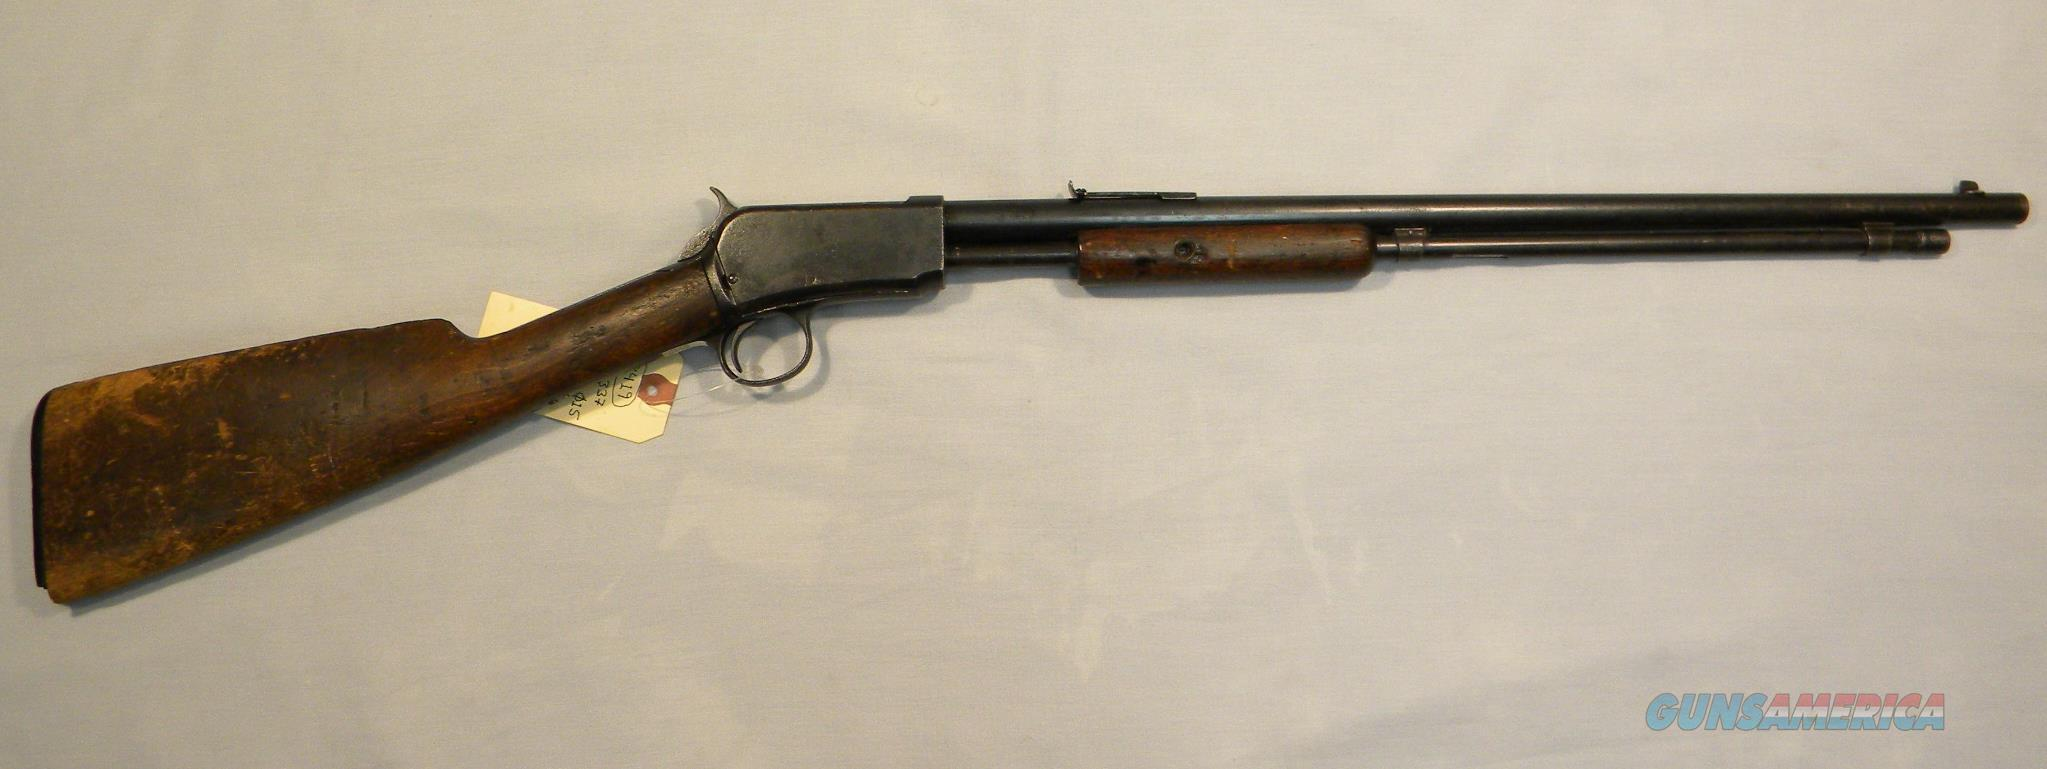 Winchester 1906 Take-Down Pump Rifle, .22 Short  Guns > Rifles > Winchester Rifles - Modern Pump